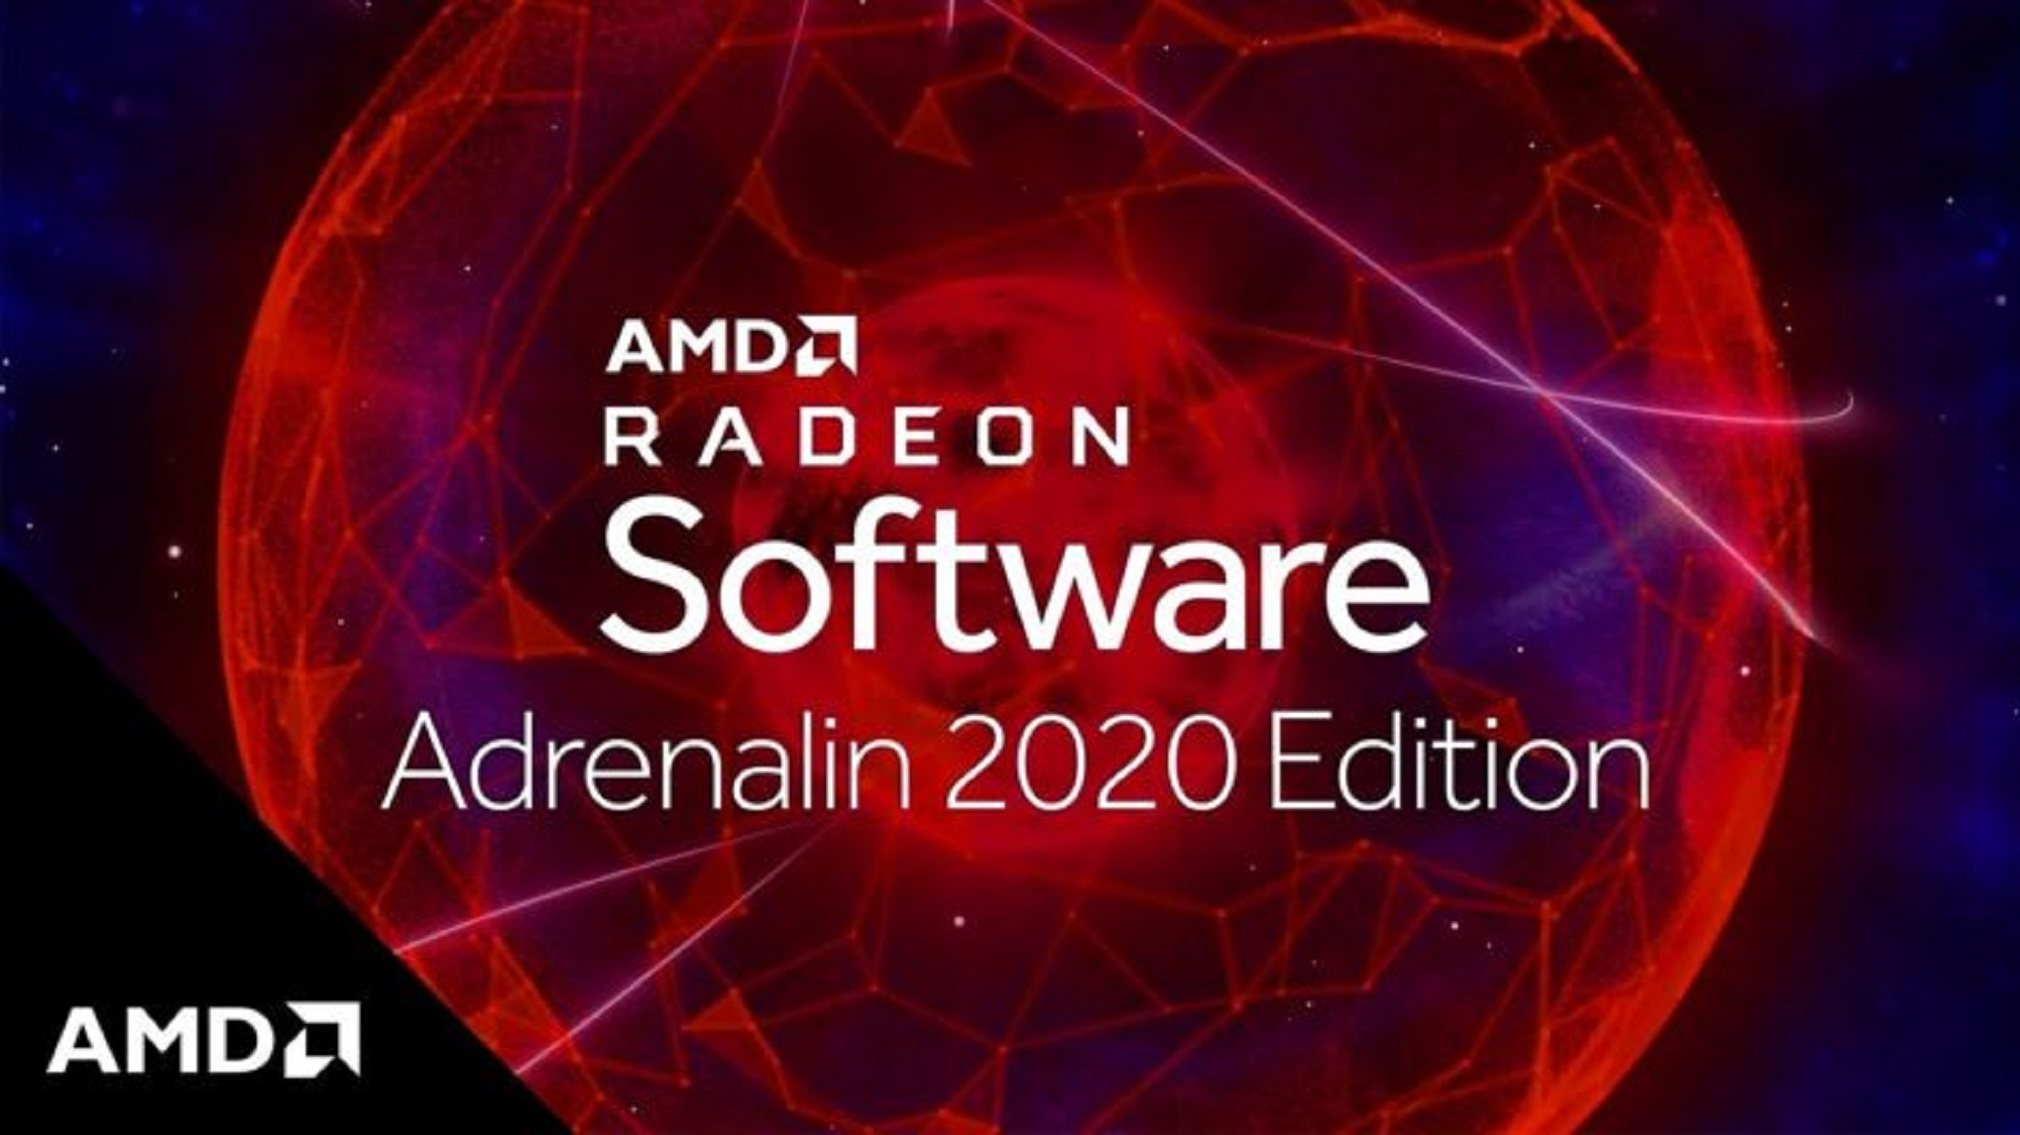 Update: AMD Radeon Adrenalin 20.1.2 Now Released, With New Support For Dragon Z: Kakarot